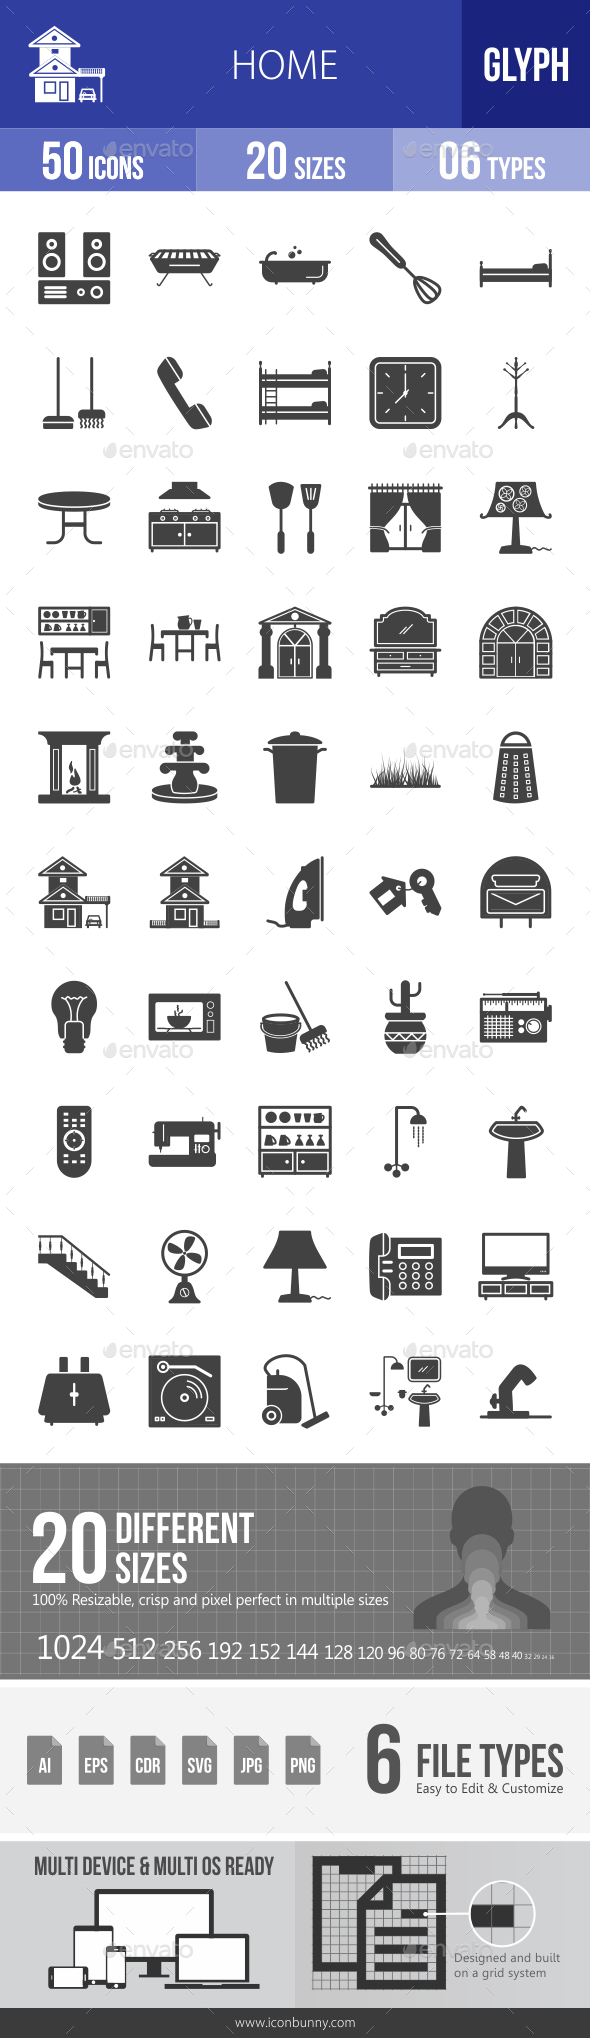 Home Glyph Icons - Icons